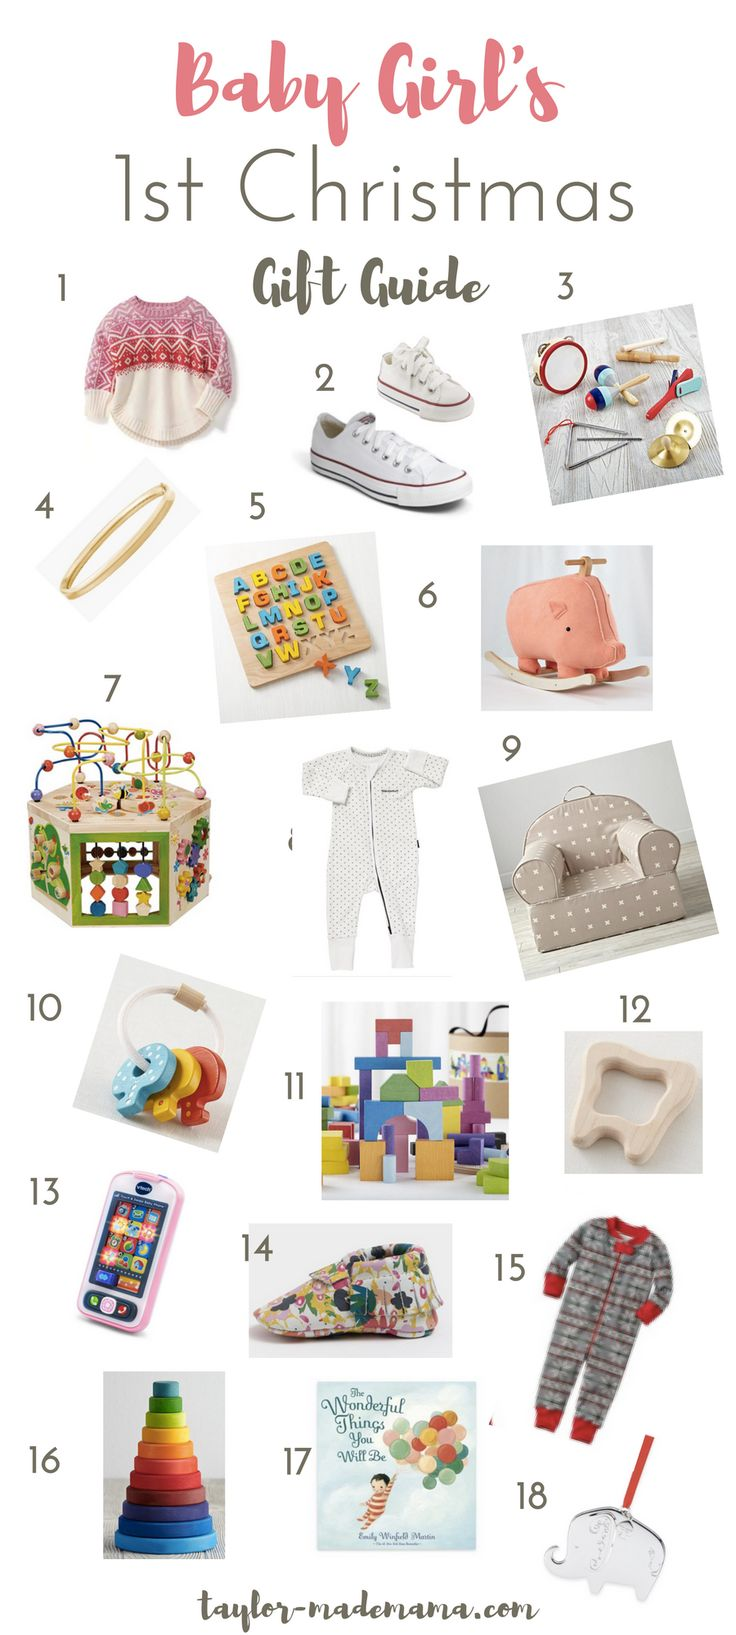 Your baby's first Christmas is such a special occasion. Here is a list of 18 gift ideas to give a baby girl on her 1st Christmas.